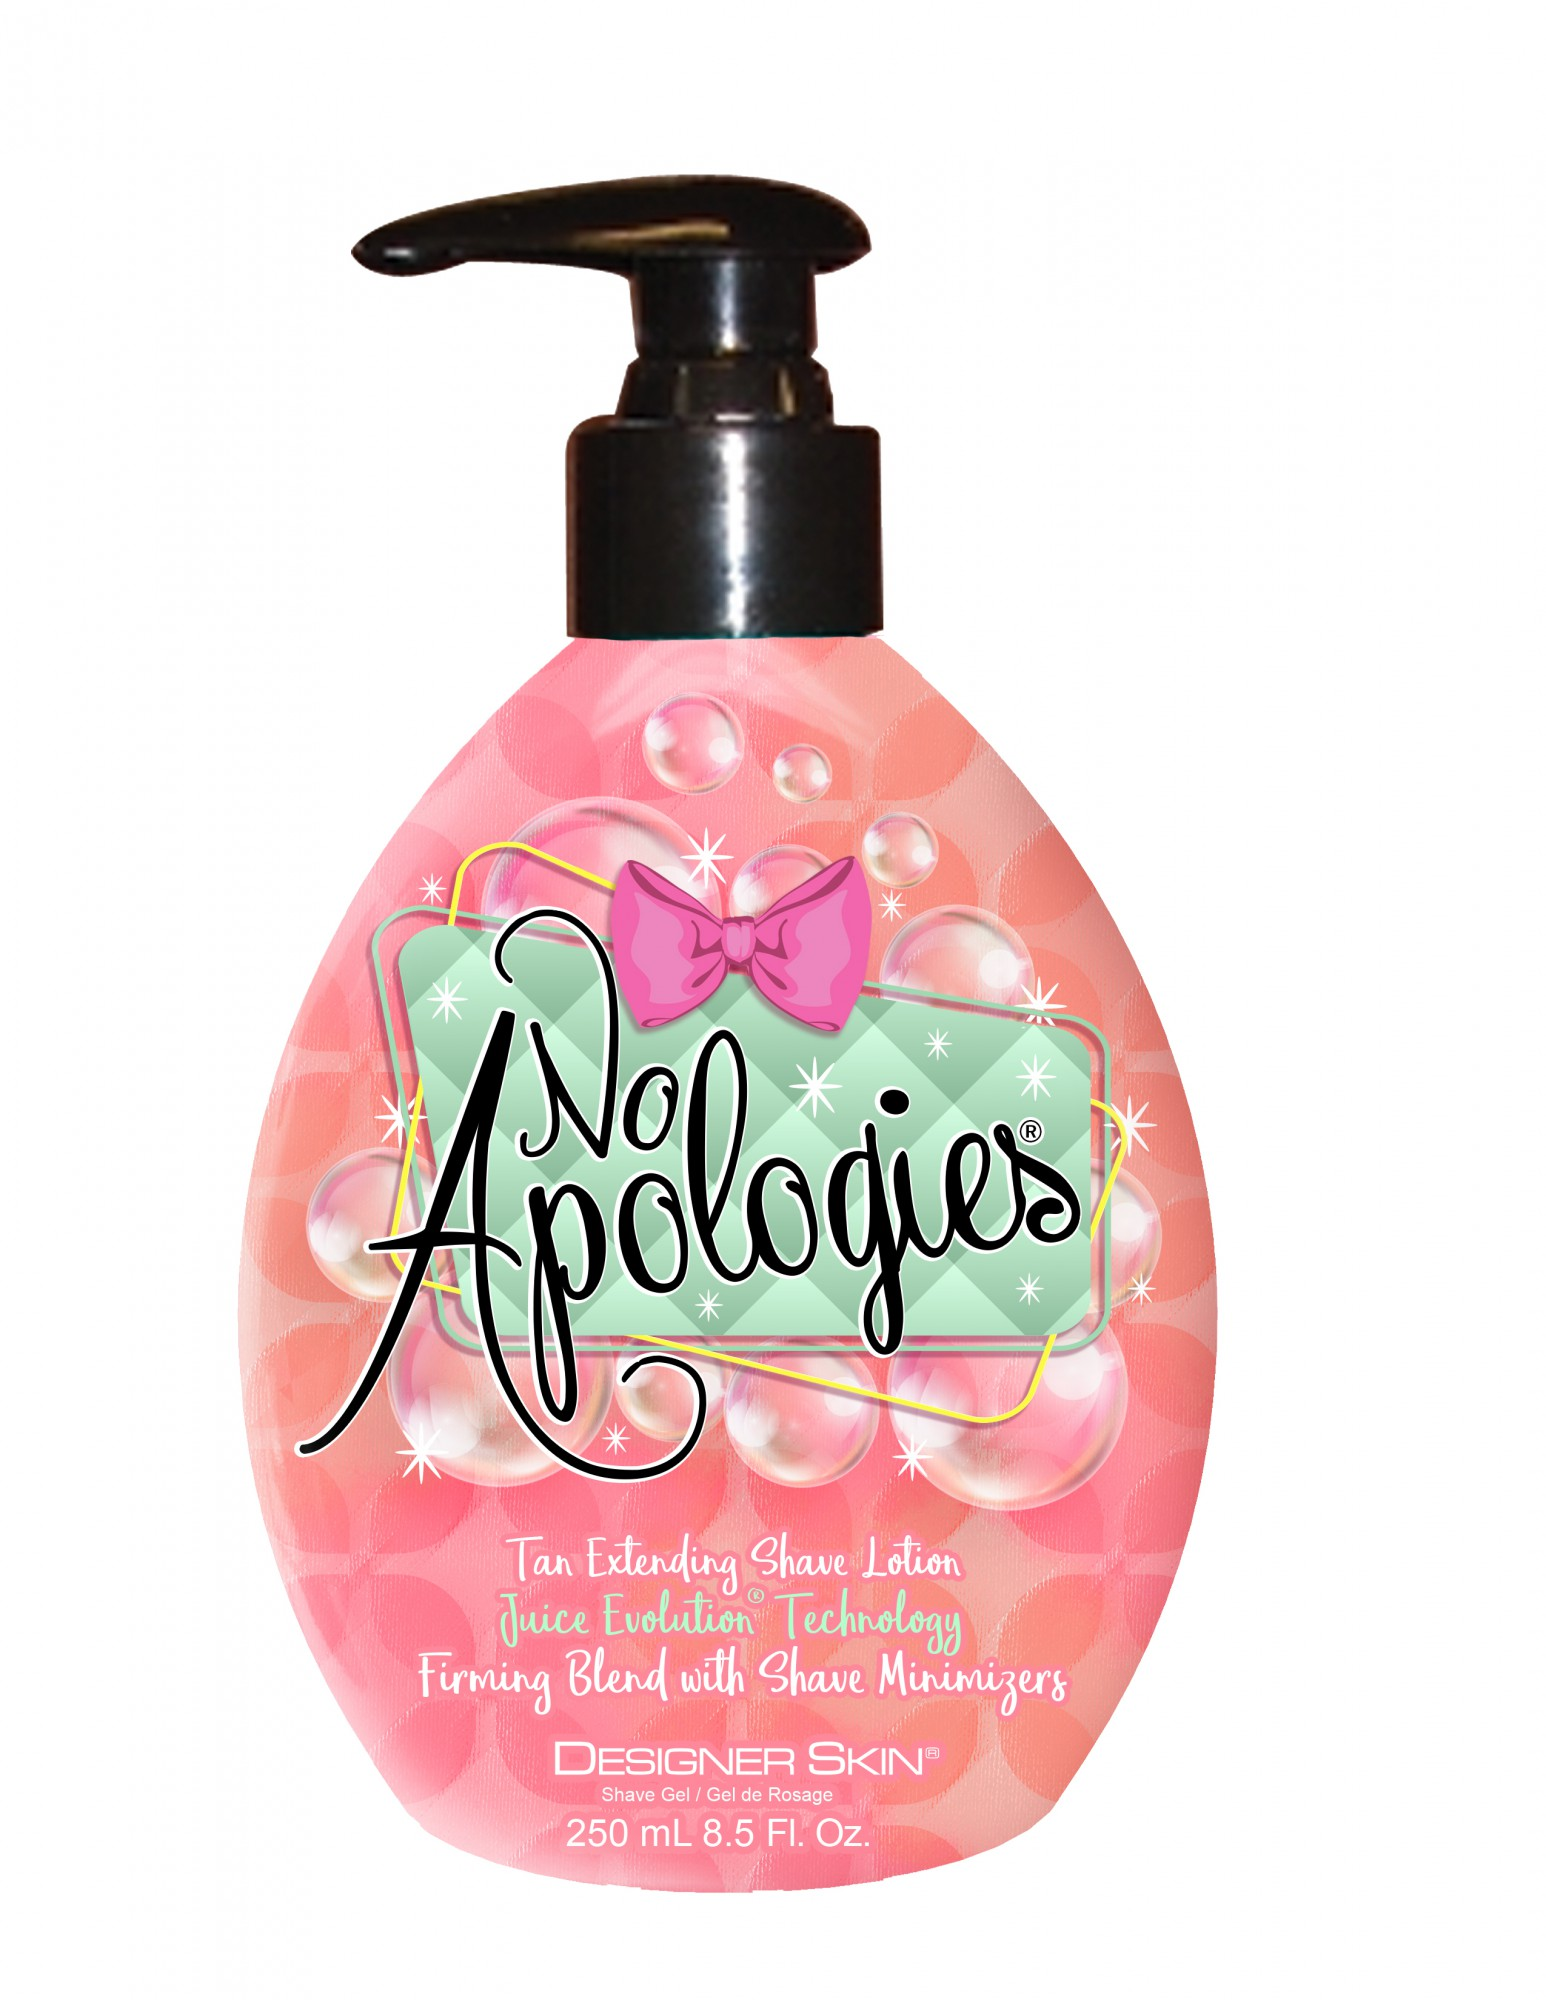 No Apologies® Juice Evolution® Technology Tan Extending Shave Lotion